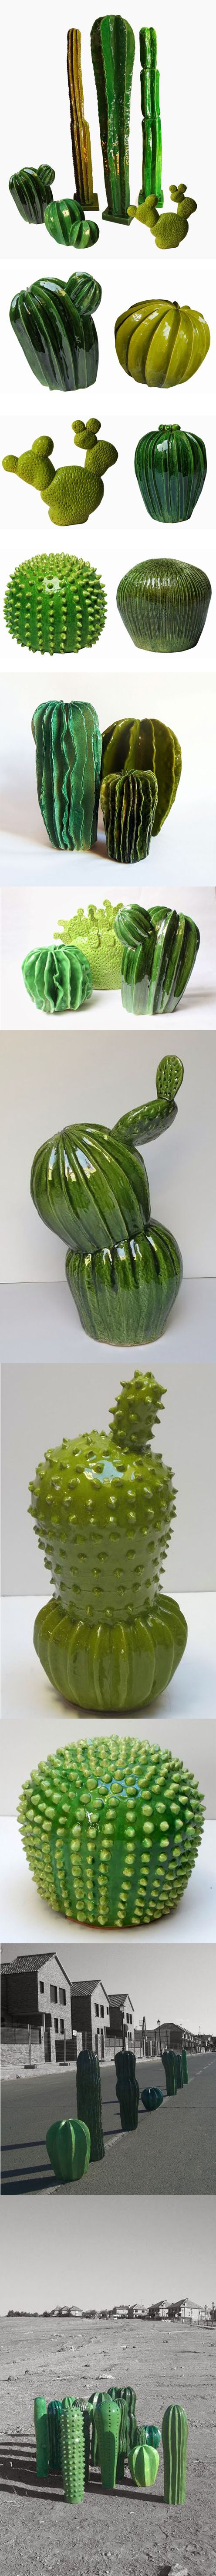 Ceramic cactus - The works of Lina Cofán on the LPP blog. All images via the artist.